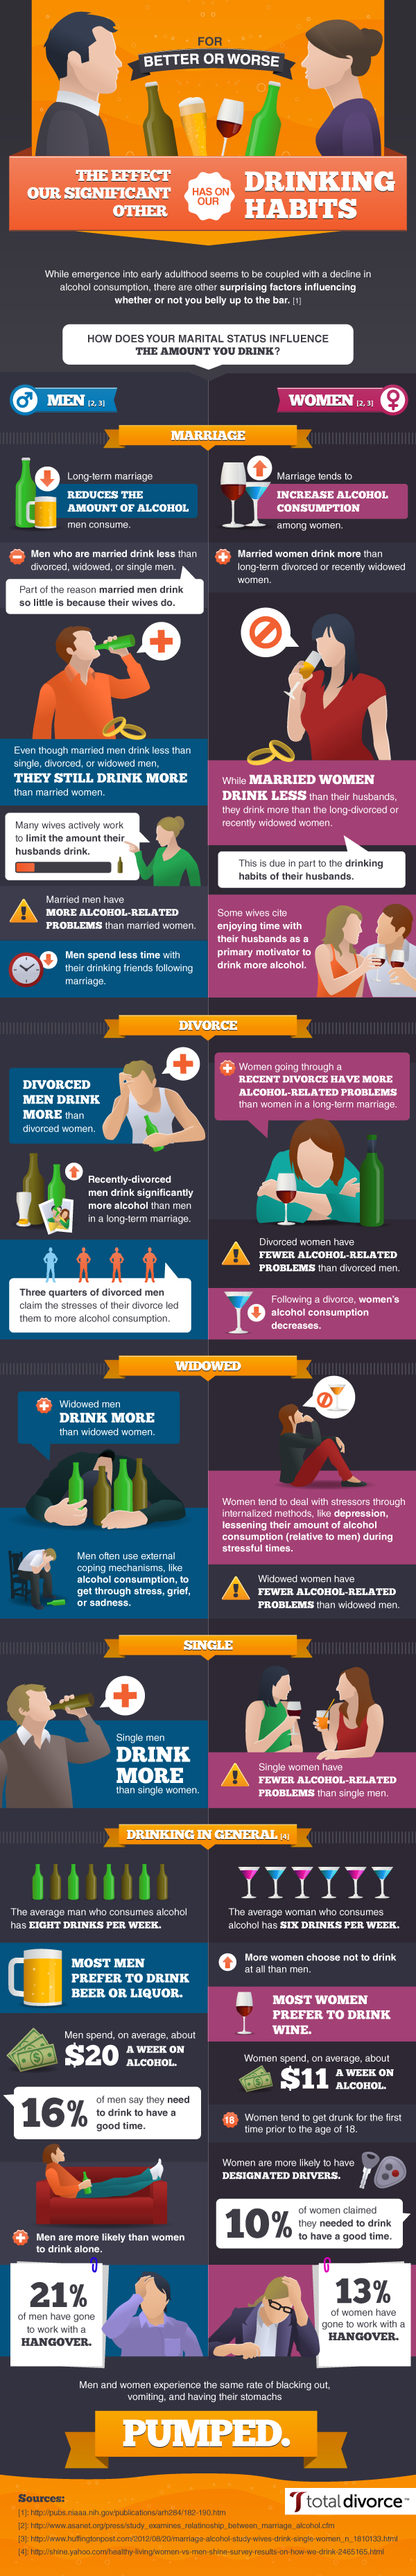 the-effect-our-significant-other-has-on-our-drinking-habits_50c63ed7030b2